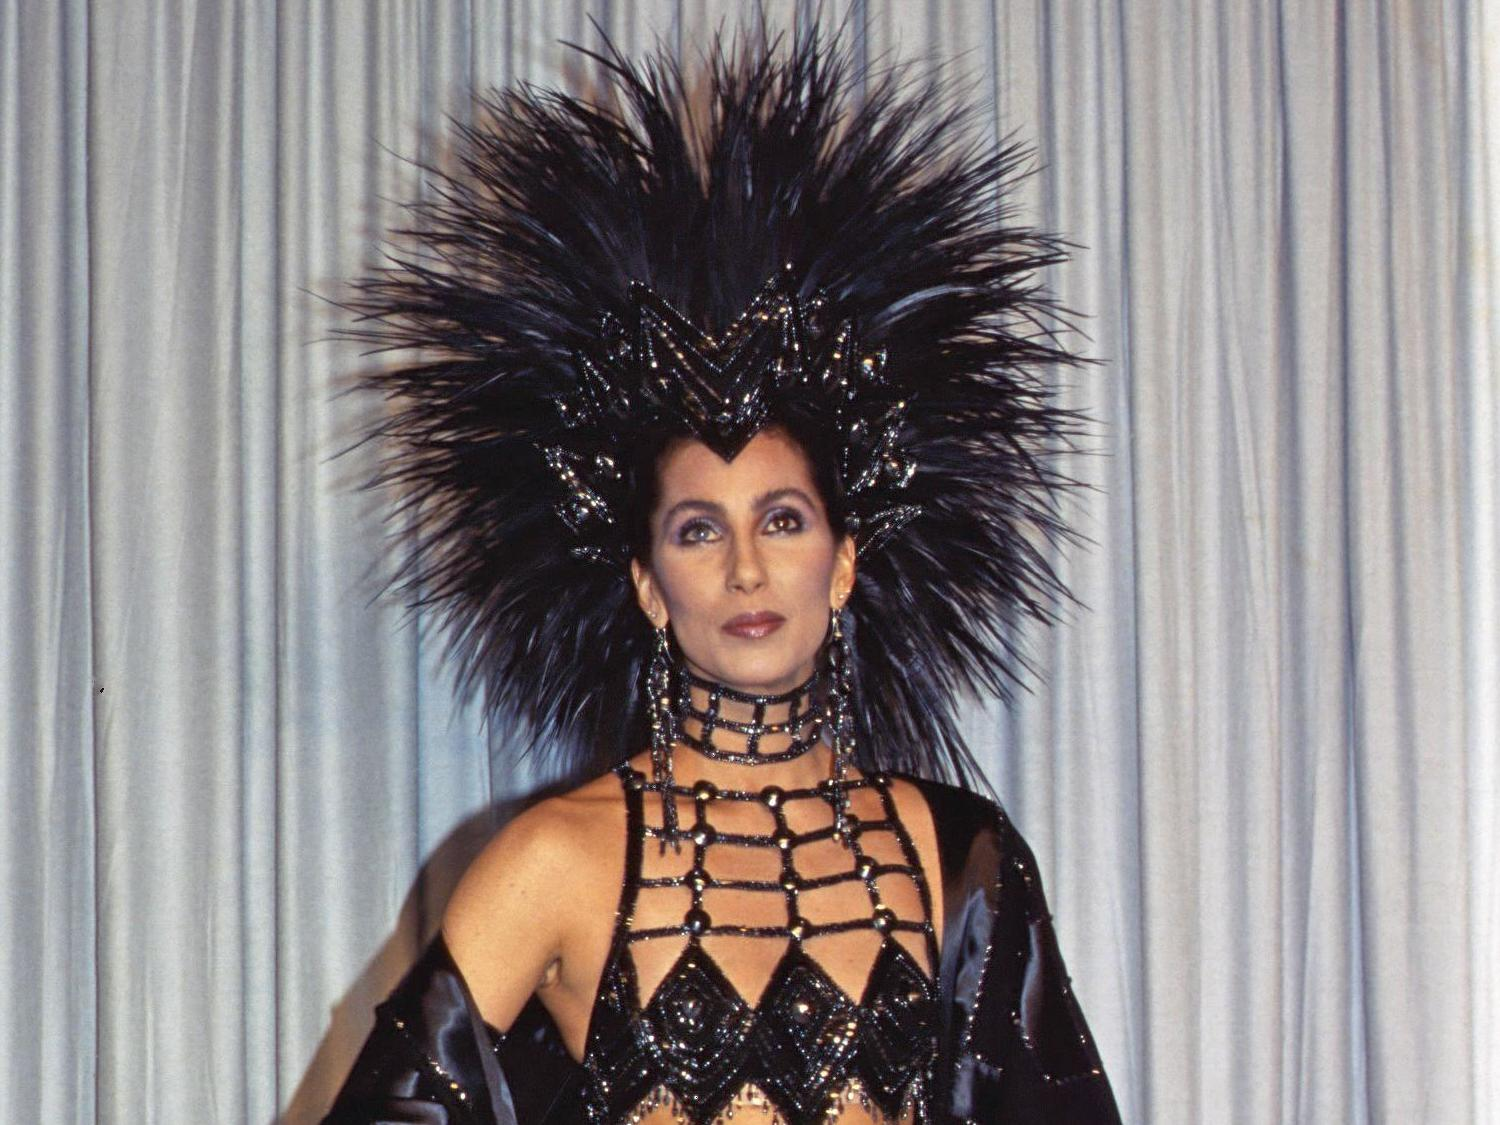 Cher says she wore 1986 Oscars gown to hit back at the Academy for not taking her seriously